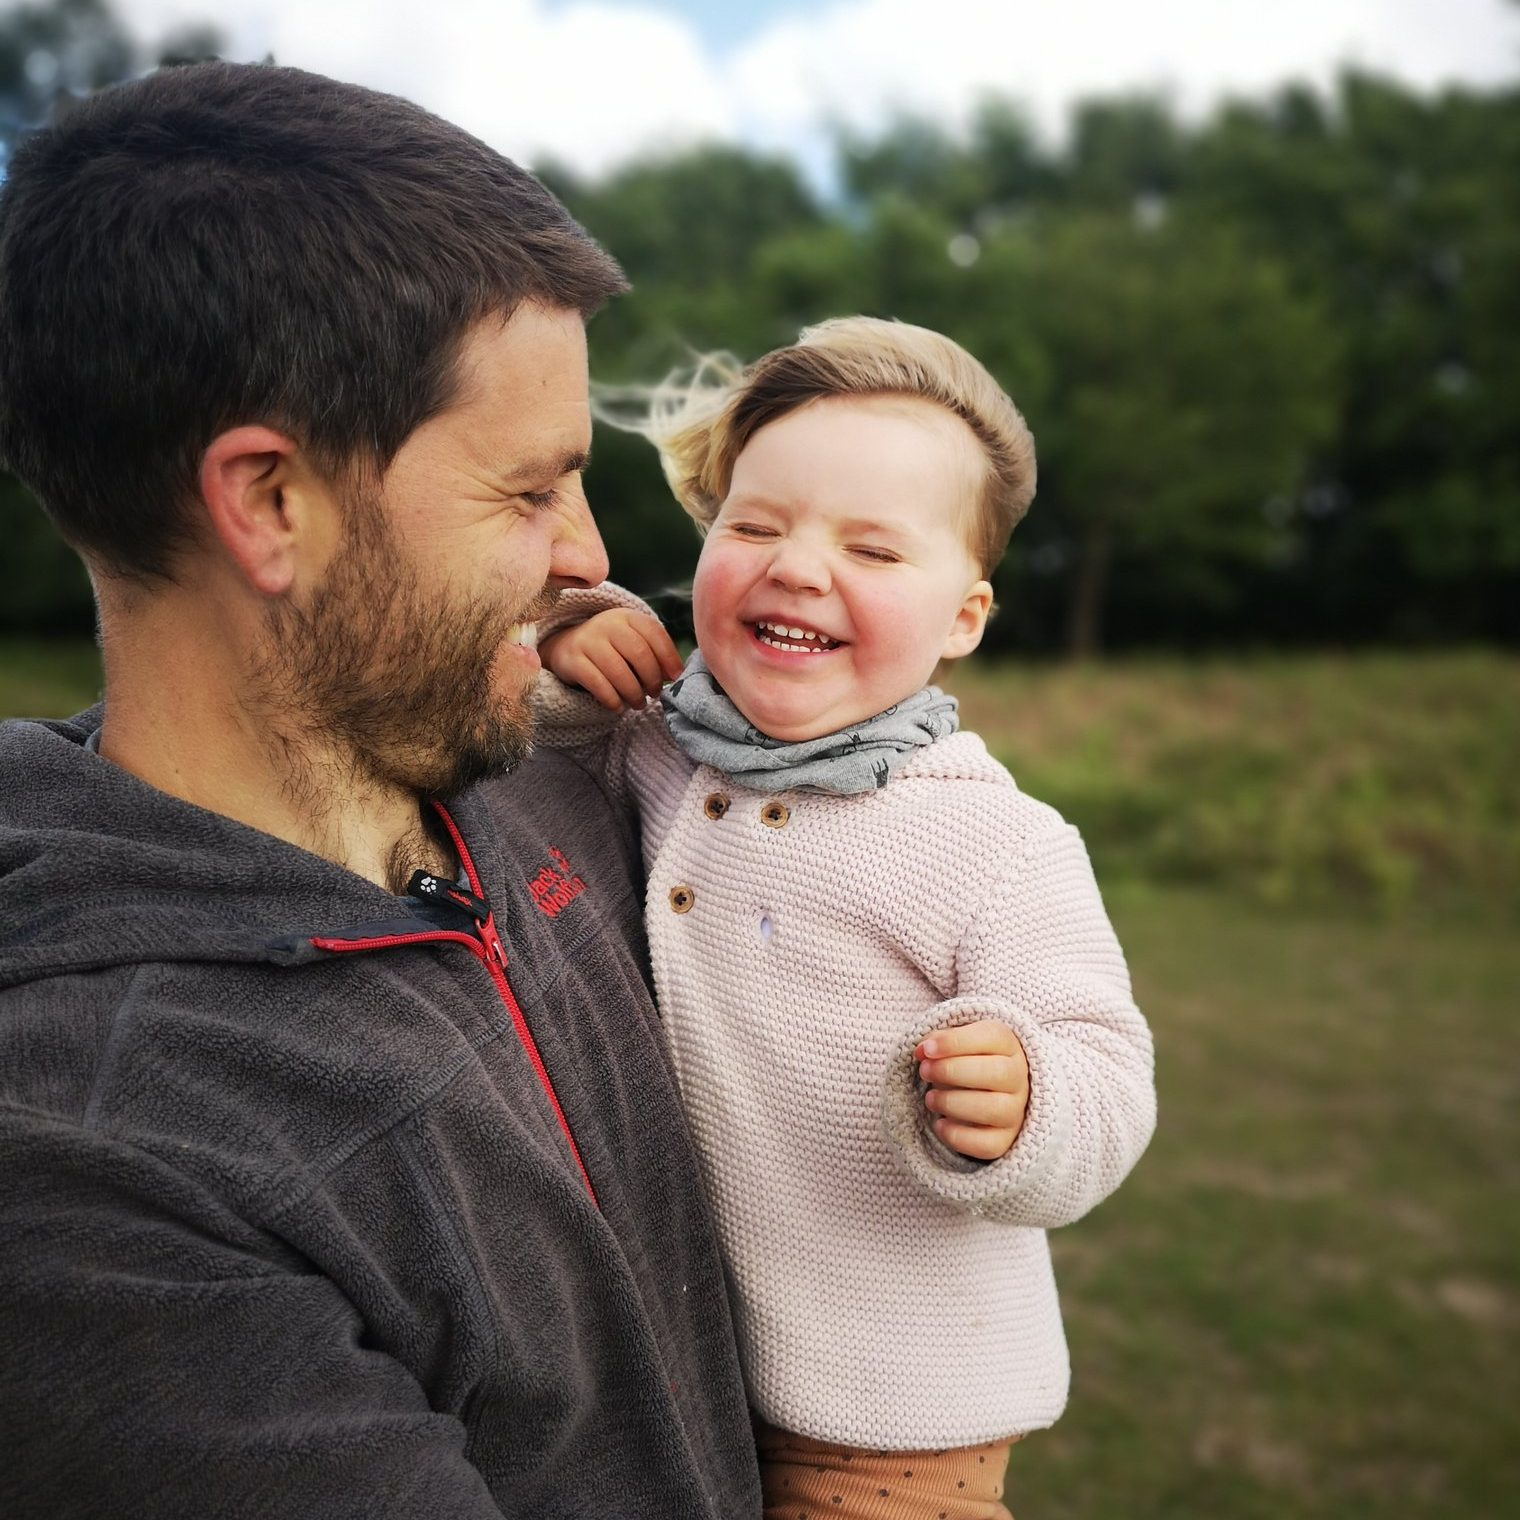 A man holding a small child as they smile and the wind blows through their hair.